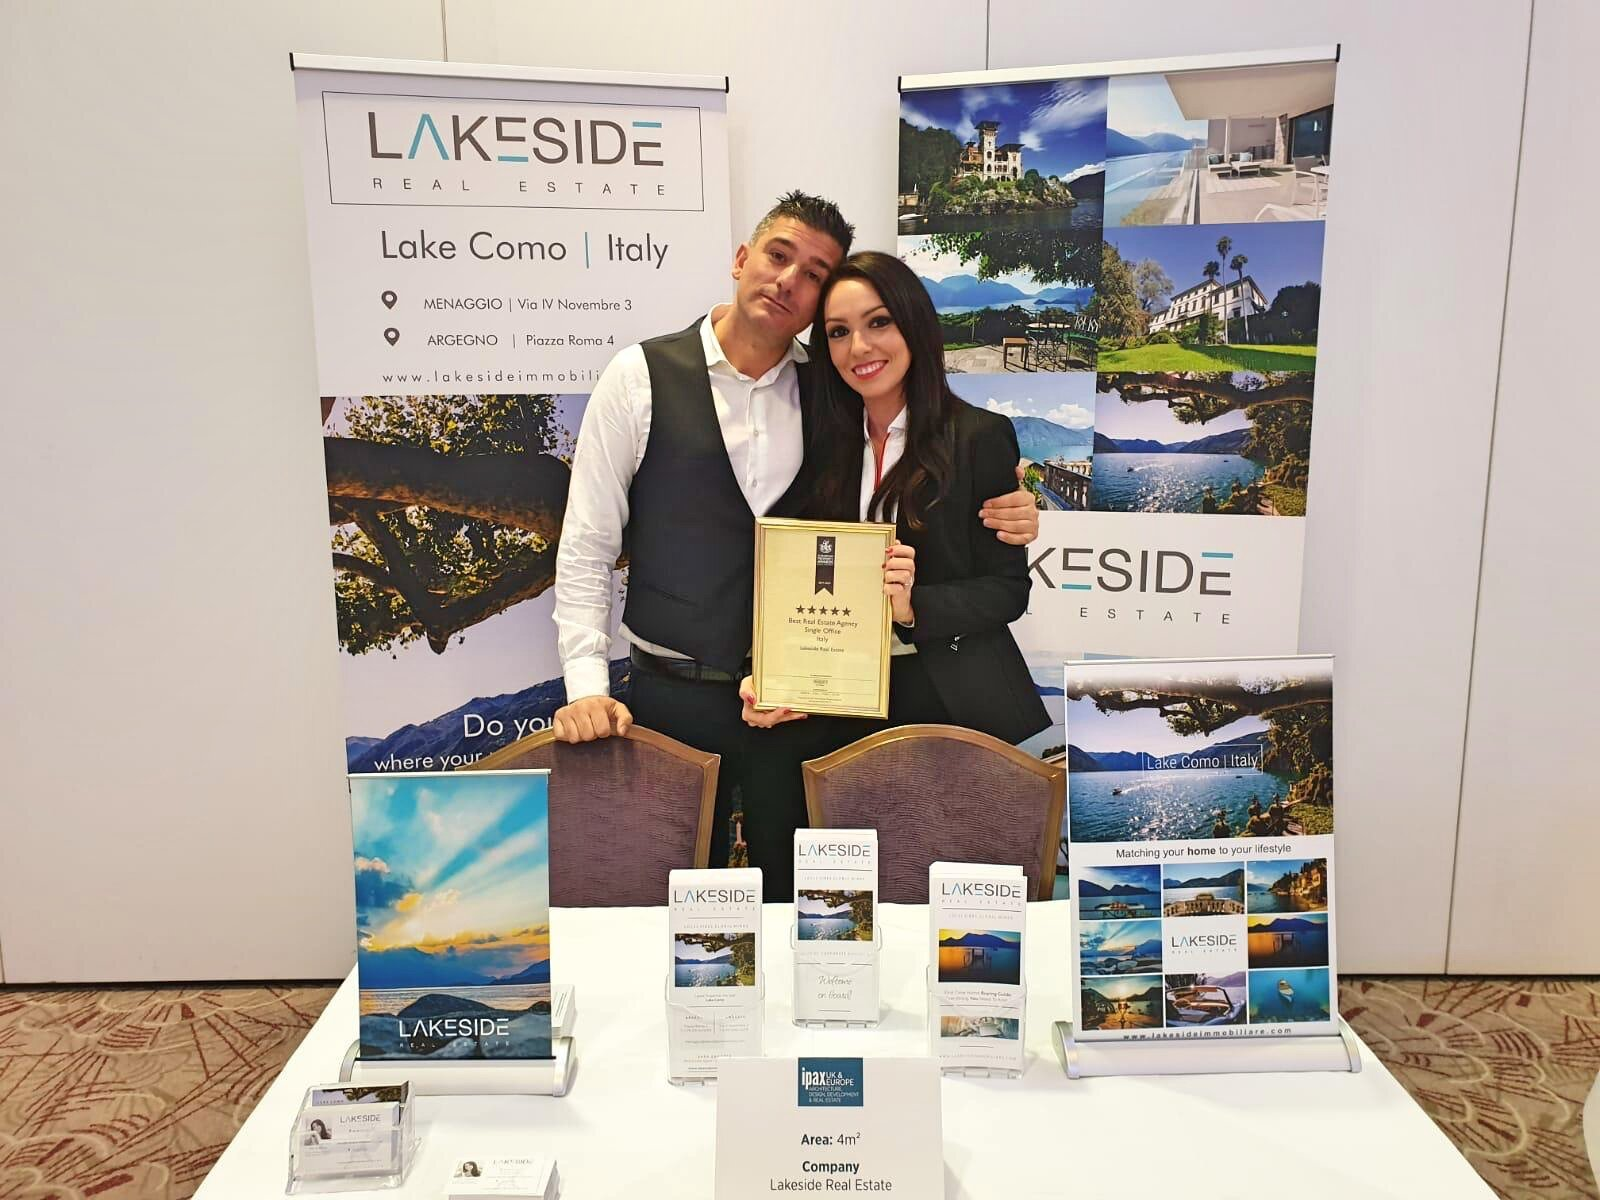 Sara, Lakeside CEO, with Eng. Luciano Galli, our Project Manager